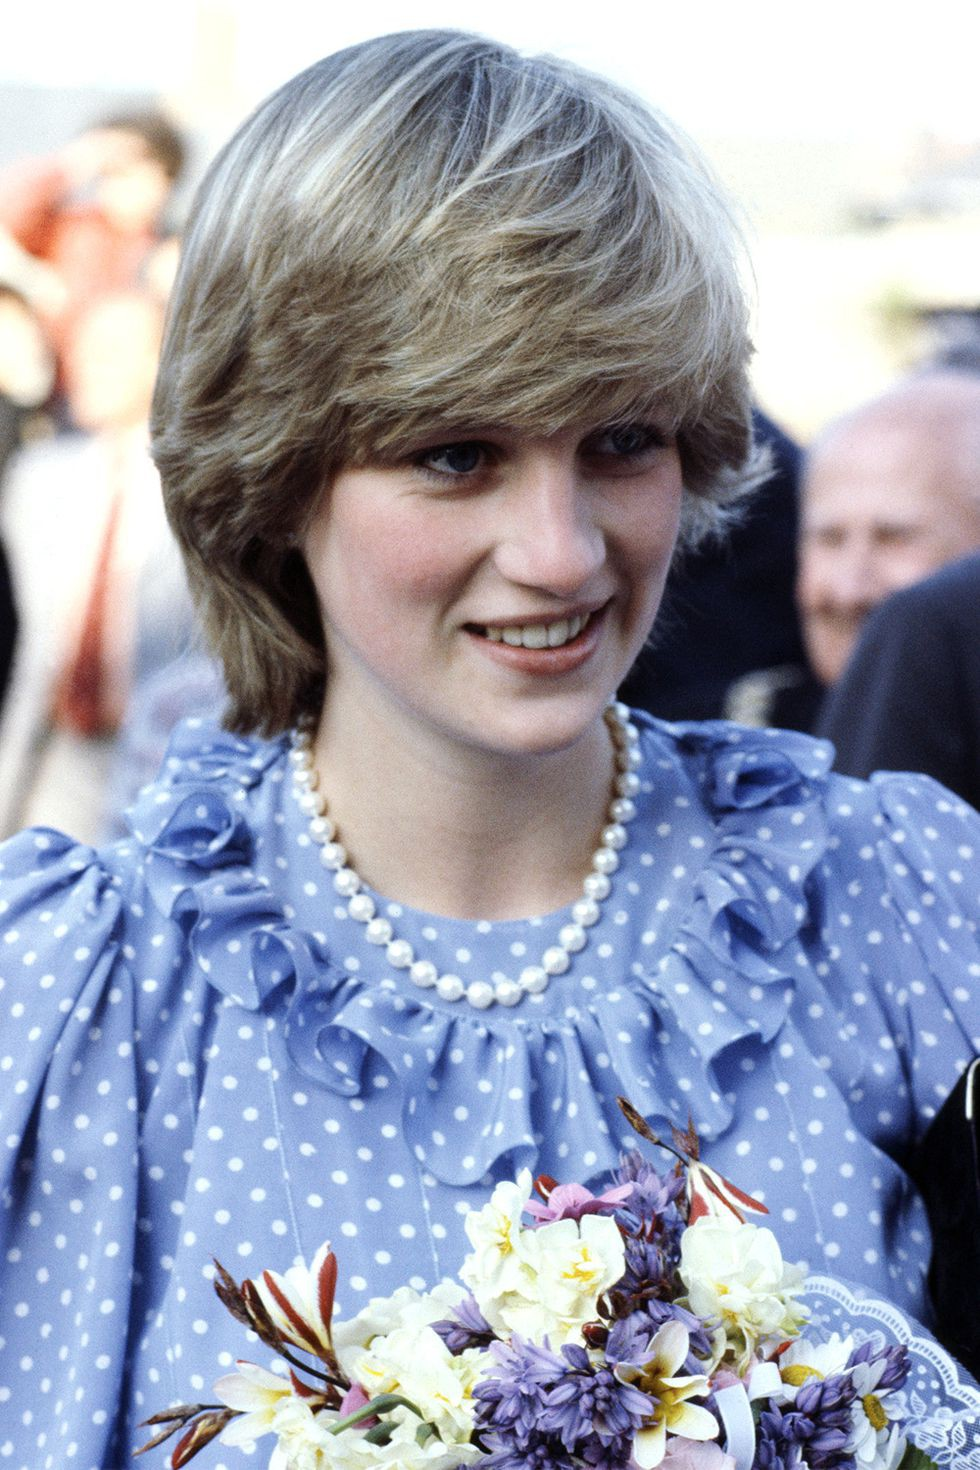 hbz-princess-diana-hair-1981-gettyimages-78977251-1502313839